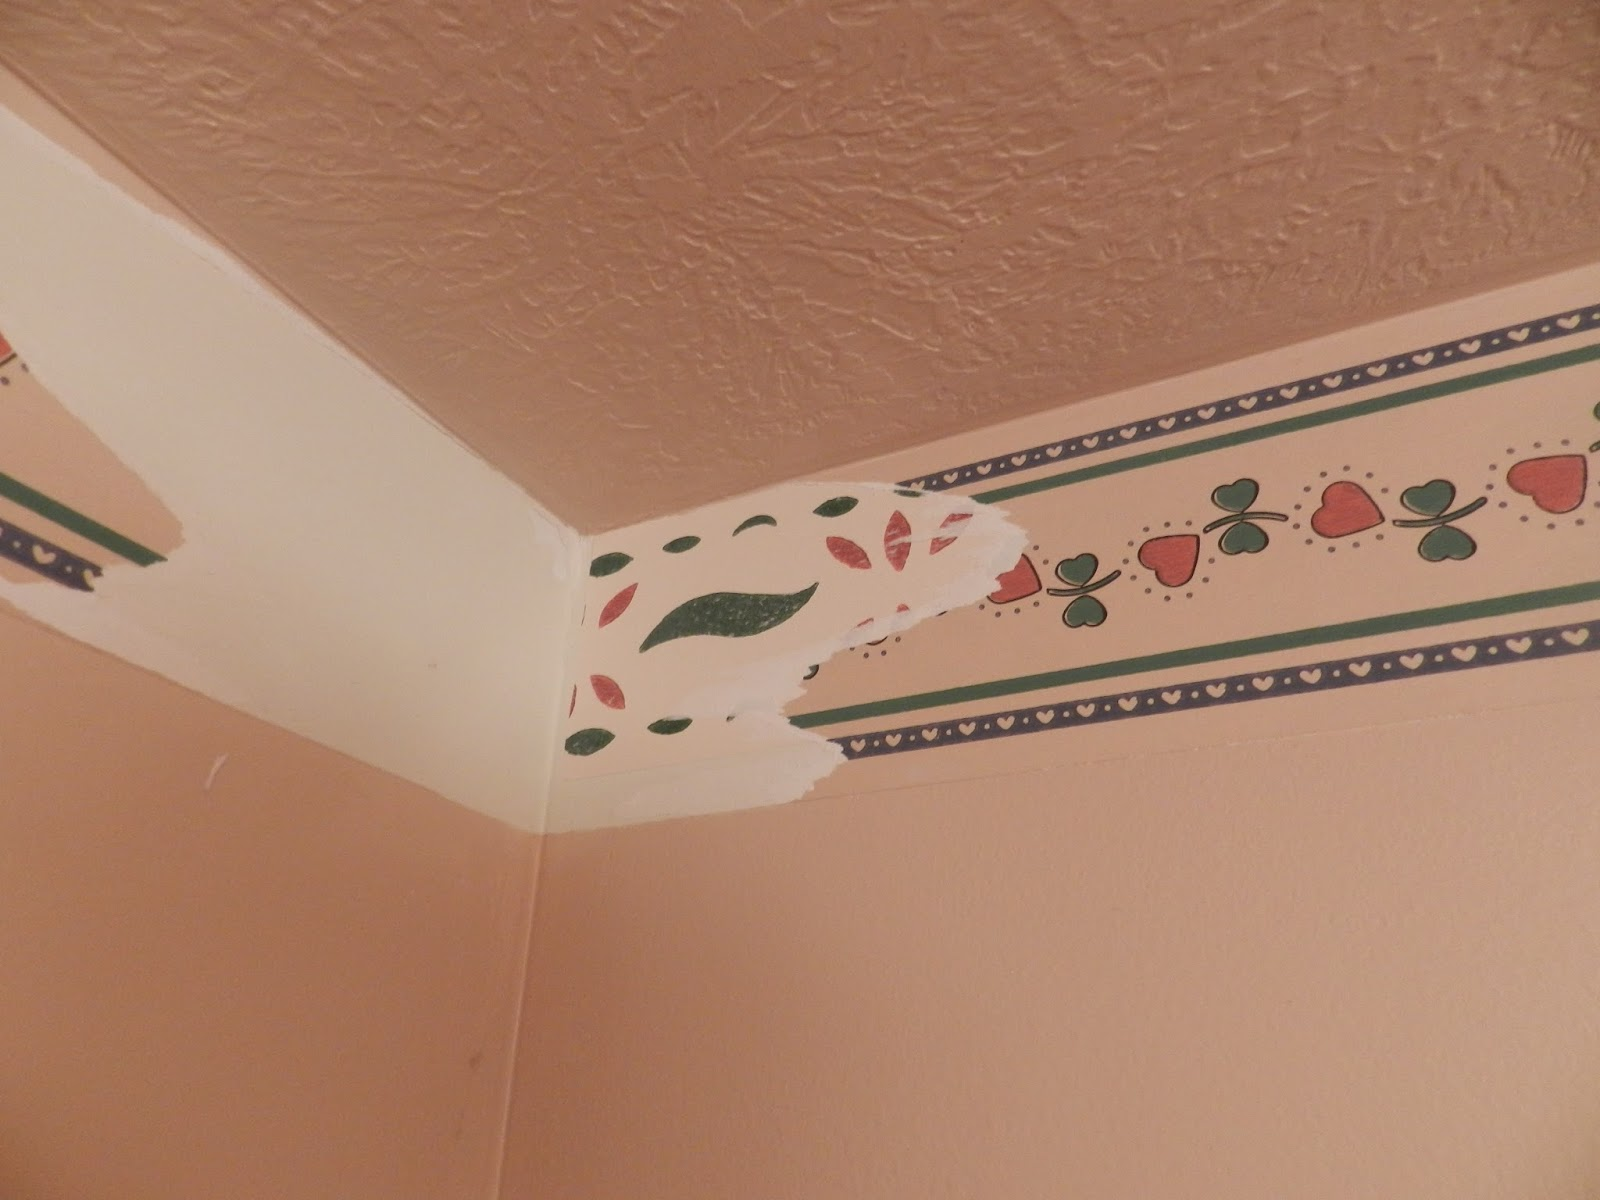 painting over wallpaper border  Home Depot Wallpaper Borders | Wallpaper Home